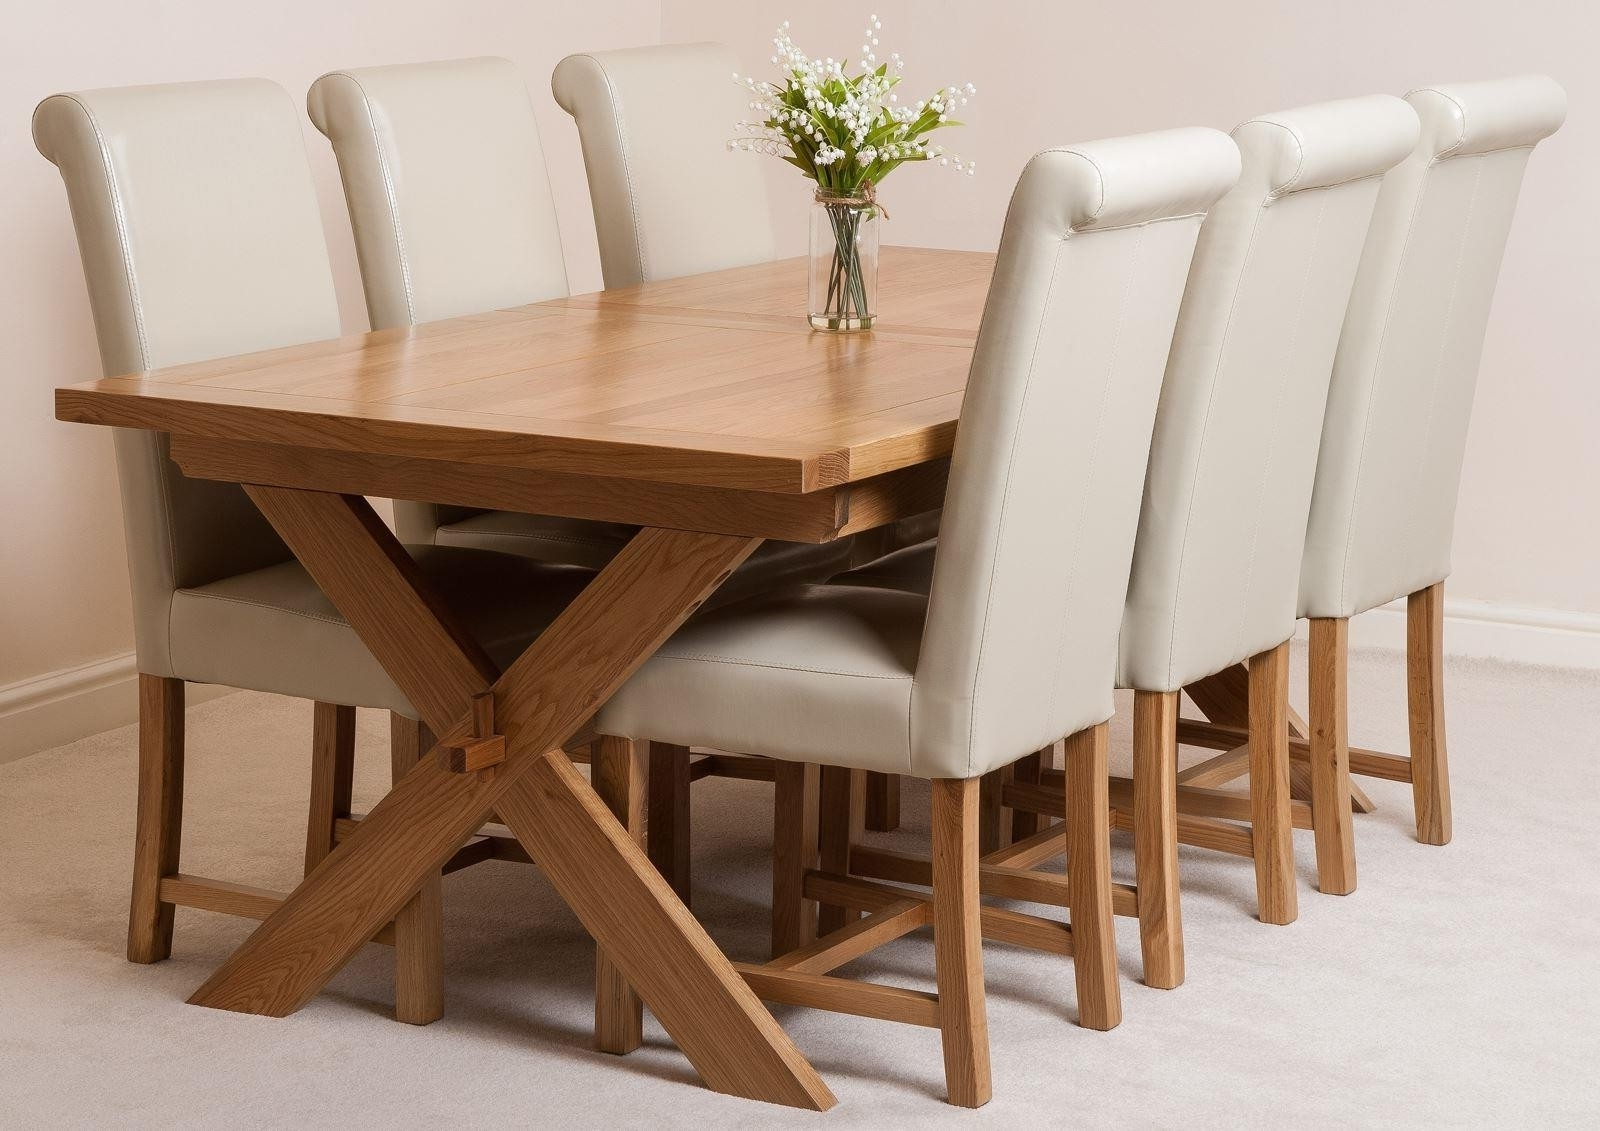 Oak Furniture King Regarding Oak Furniture Dining Sets (View 2 of 25)